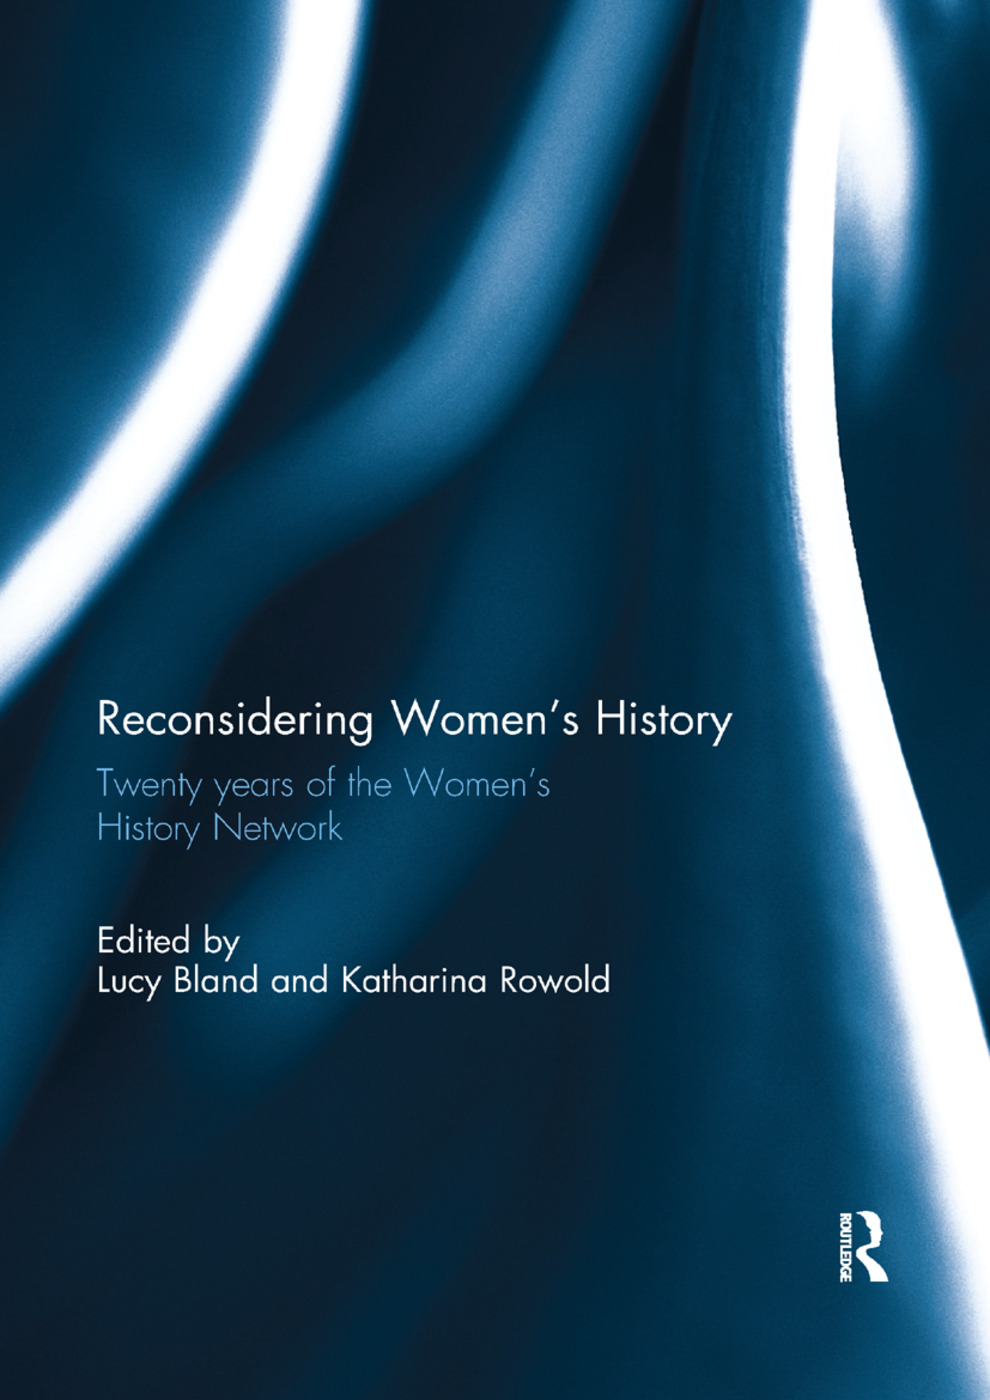 Reconsidering Women's History: Twenty years of the Women's History Network book cover